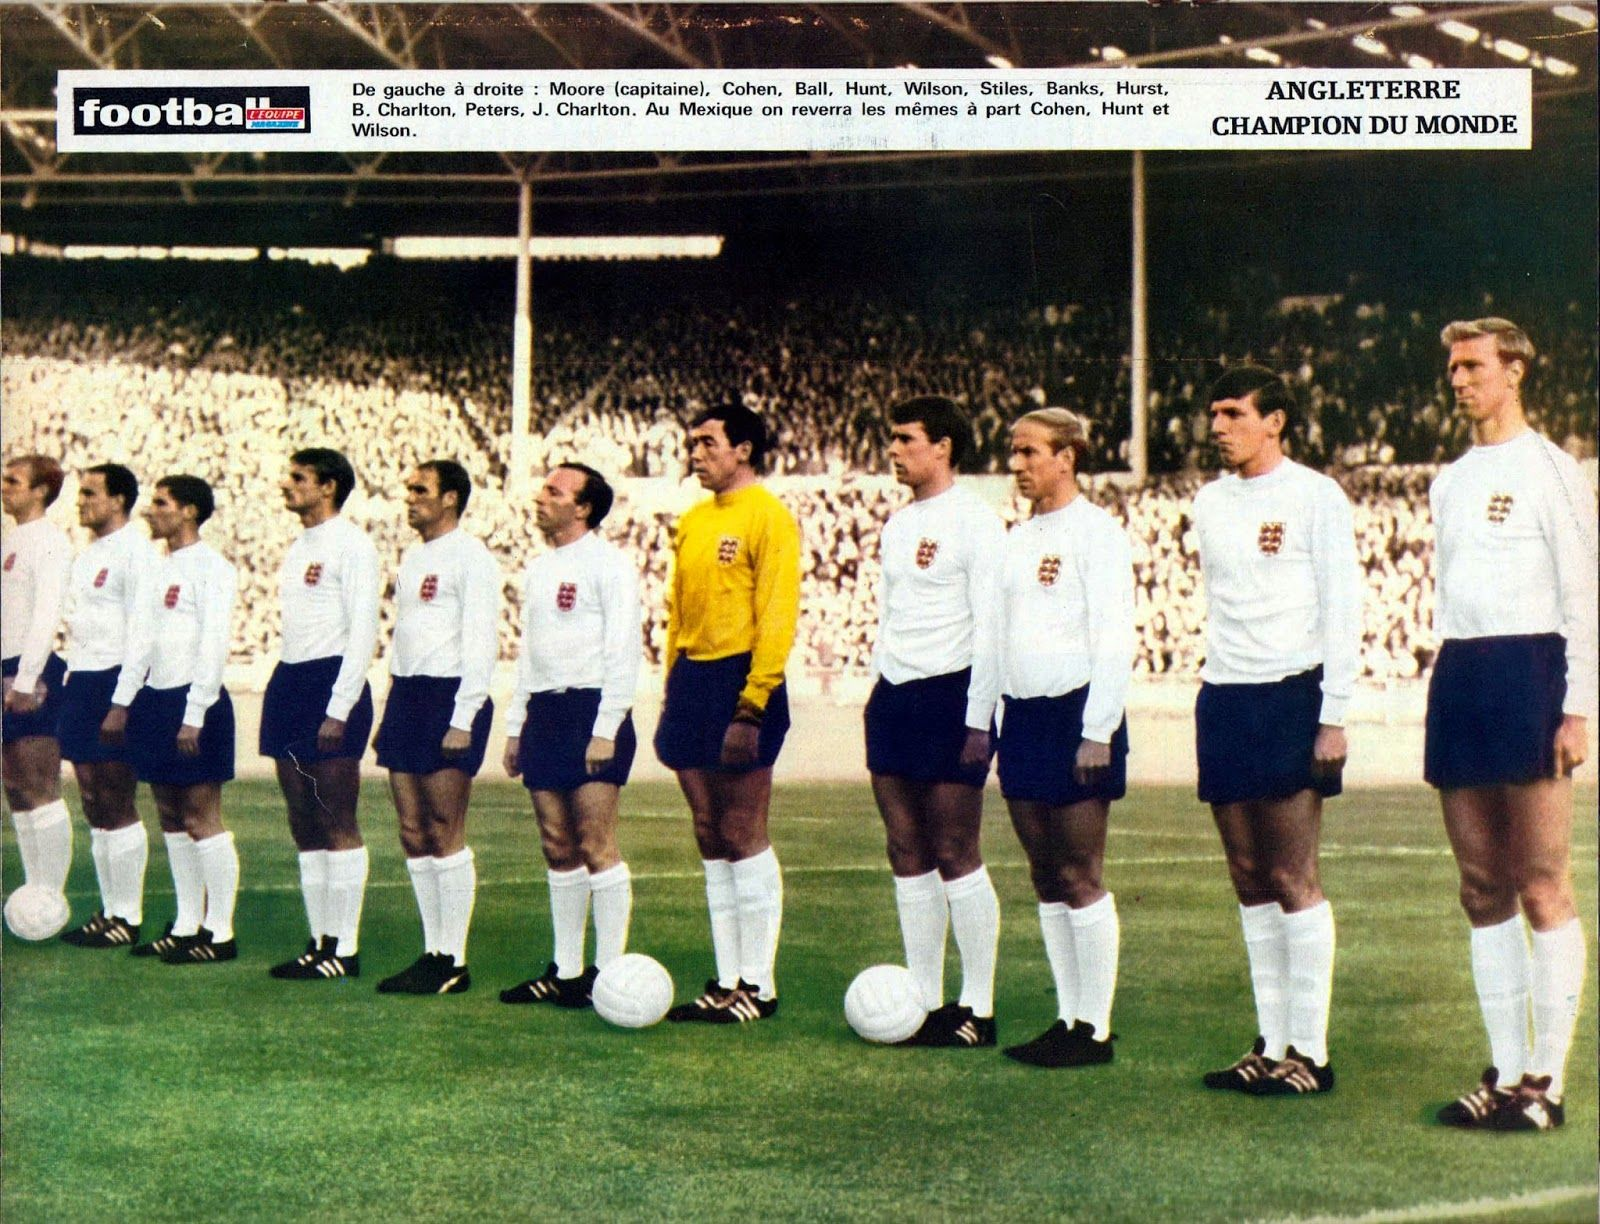 26th July 1966 England Line Prior To The Encounter With Their World Cup Semi Final England Football Team England National Football Team Football Team Pictures